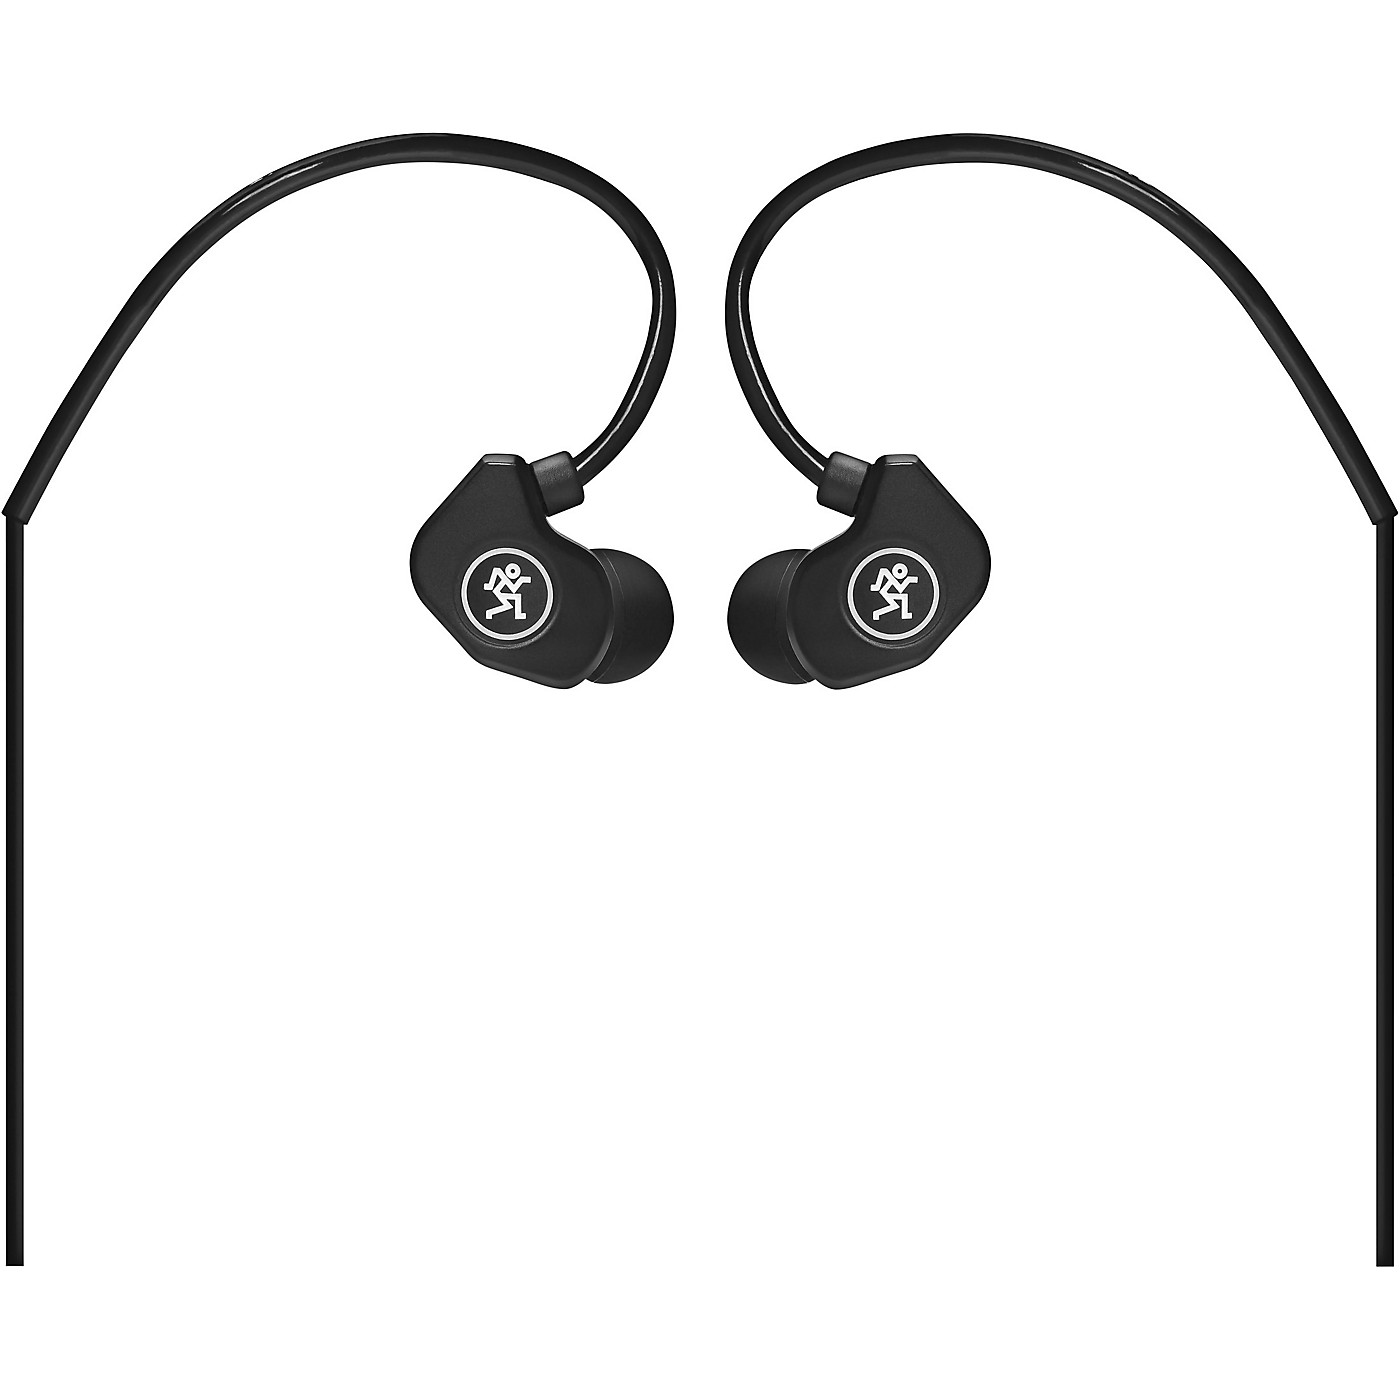 Mackie CR Buds+ Professional Fit Earphones with Mic and Control thumbnail